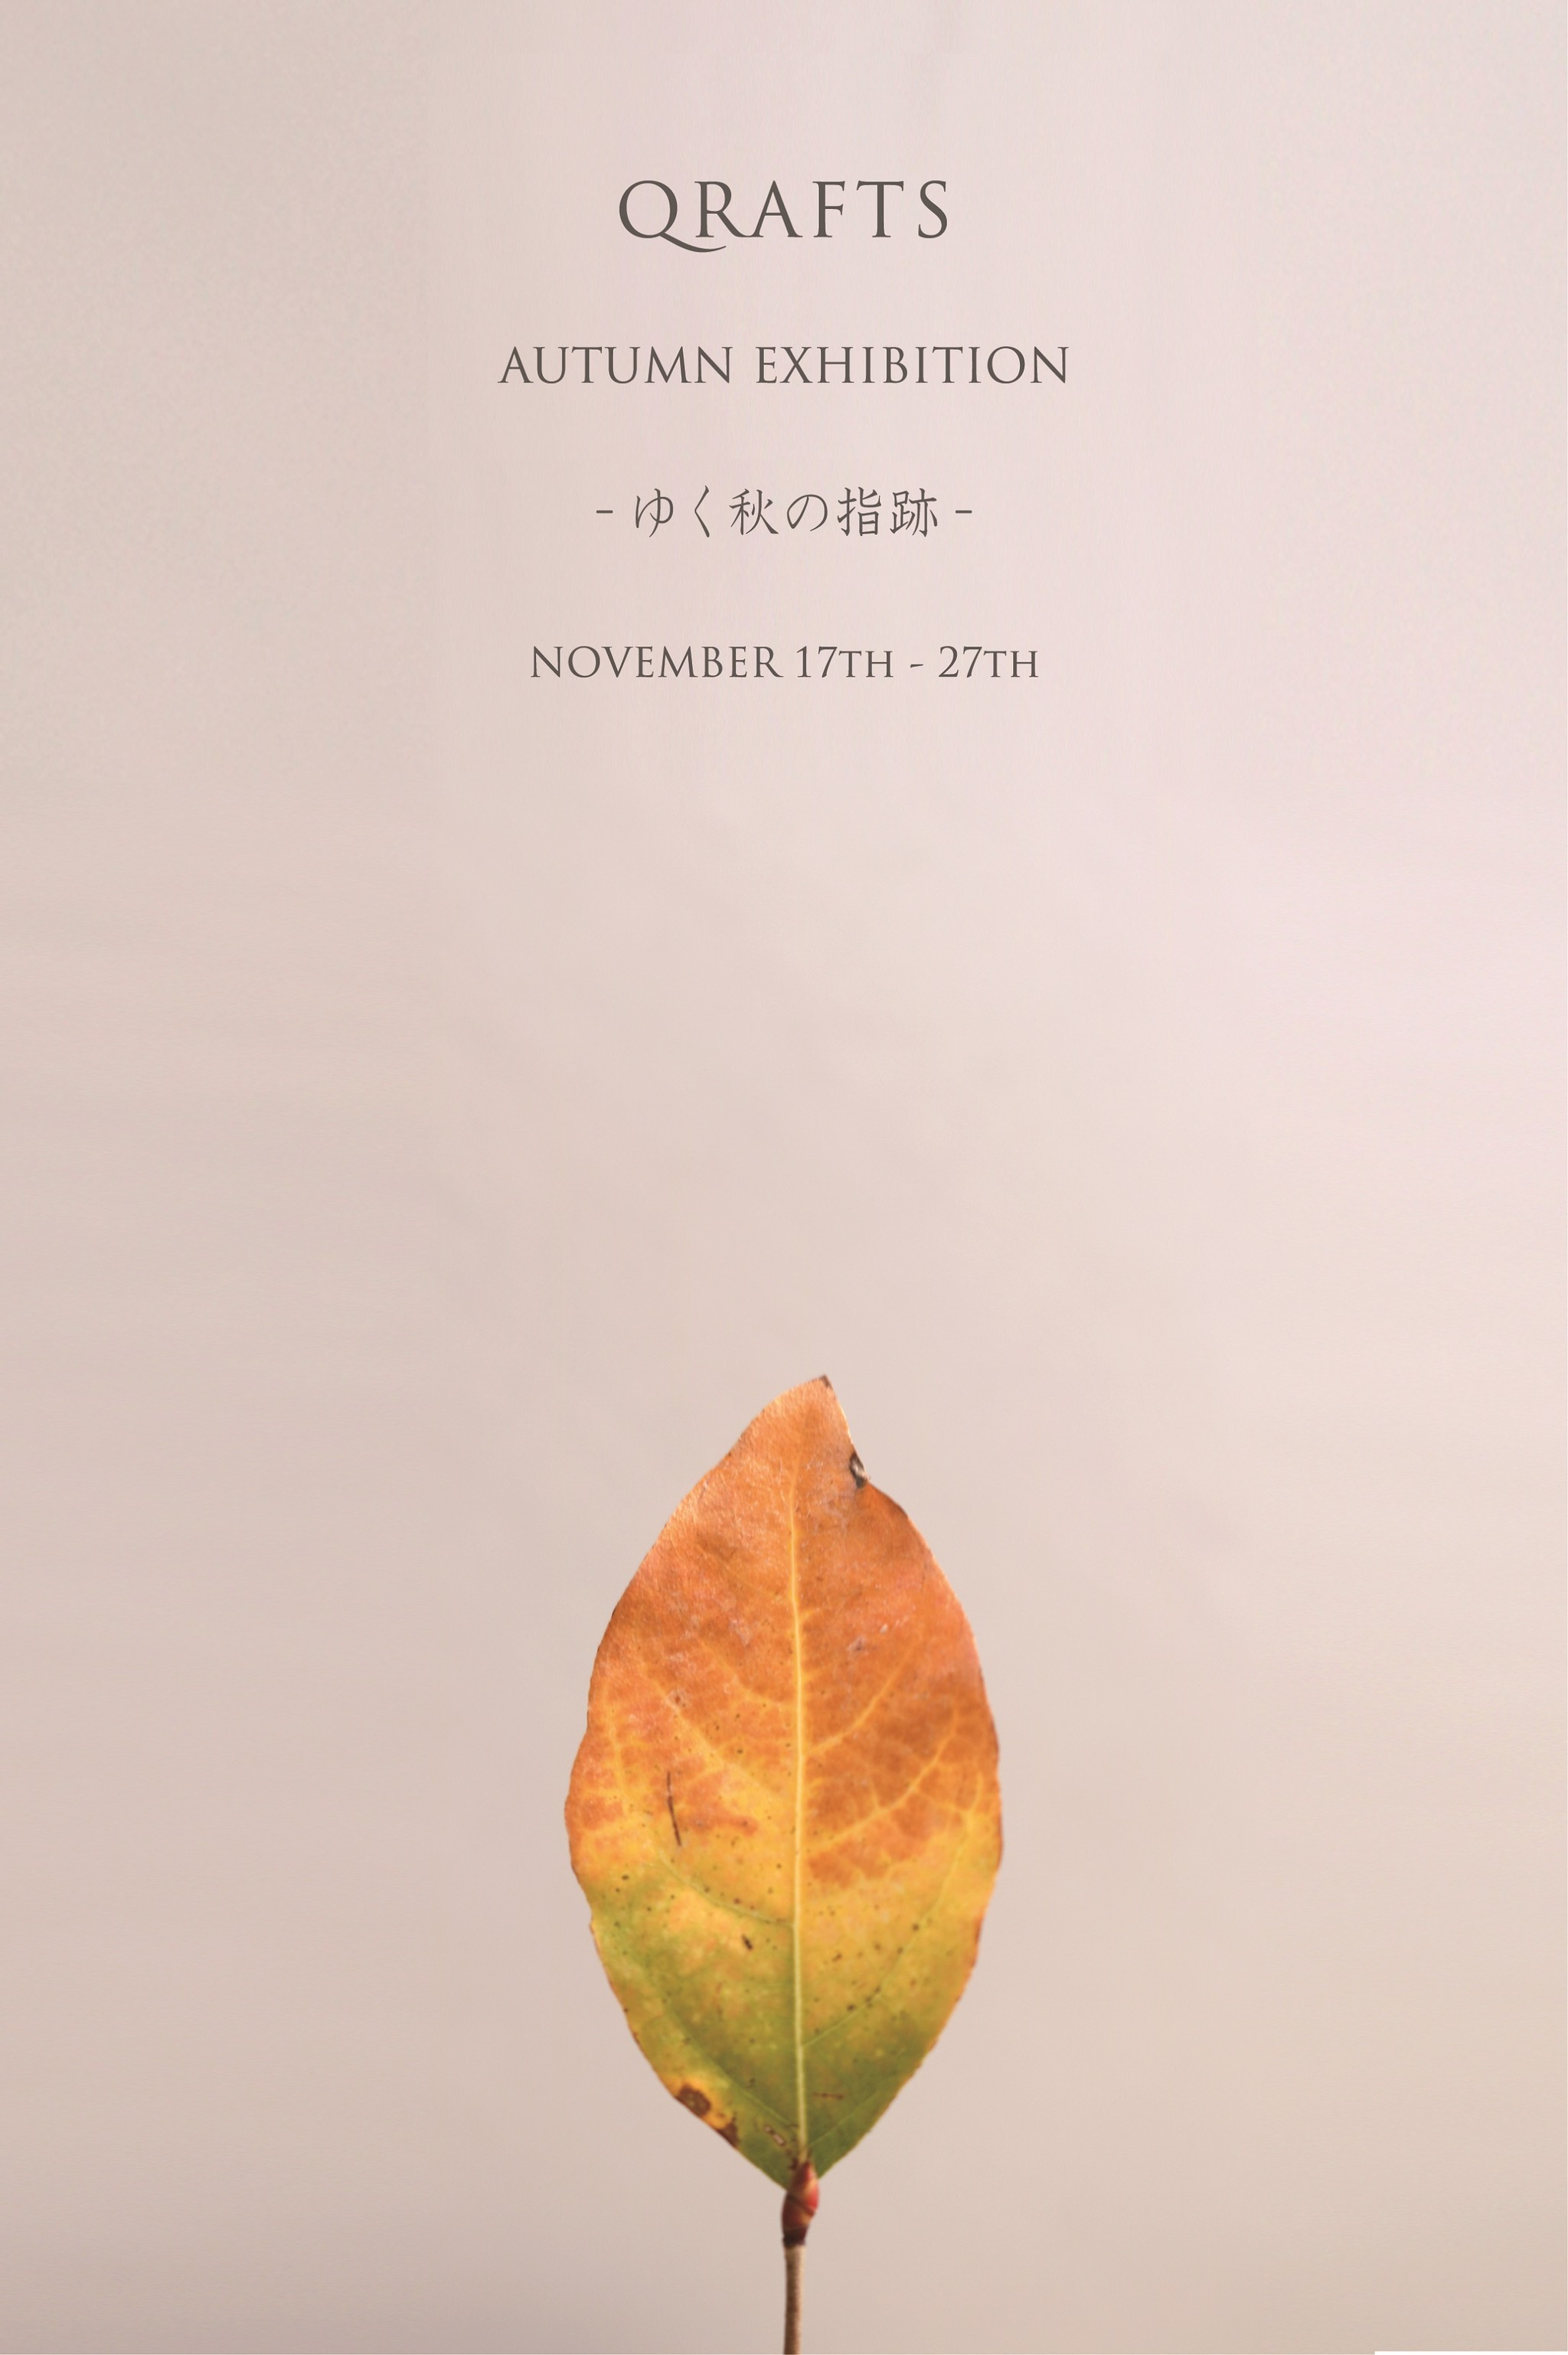 QRAFTS  autumn exhibition  -ゆく秋の指跡-